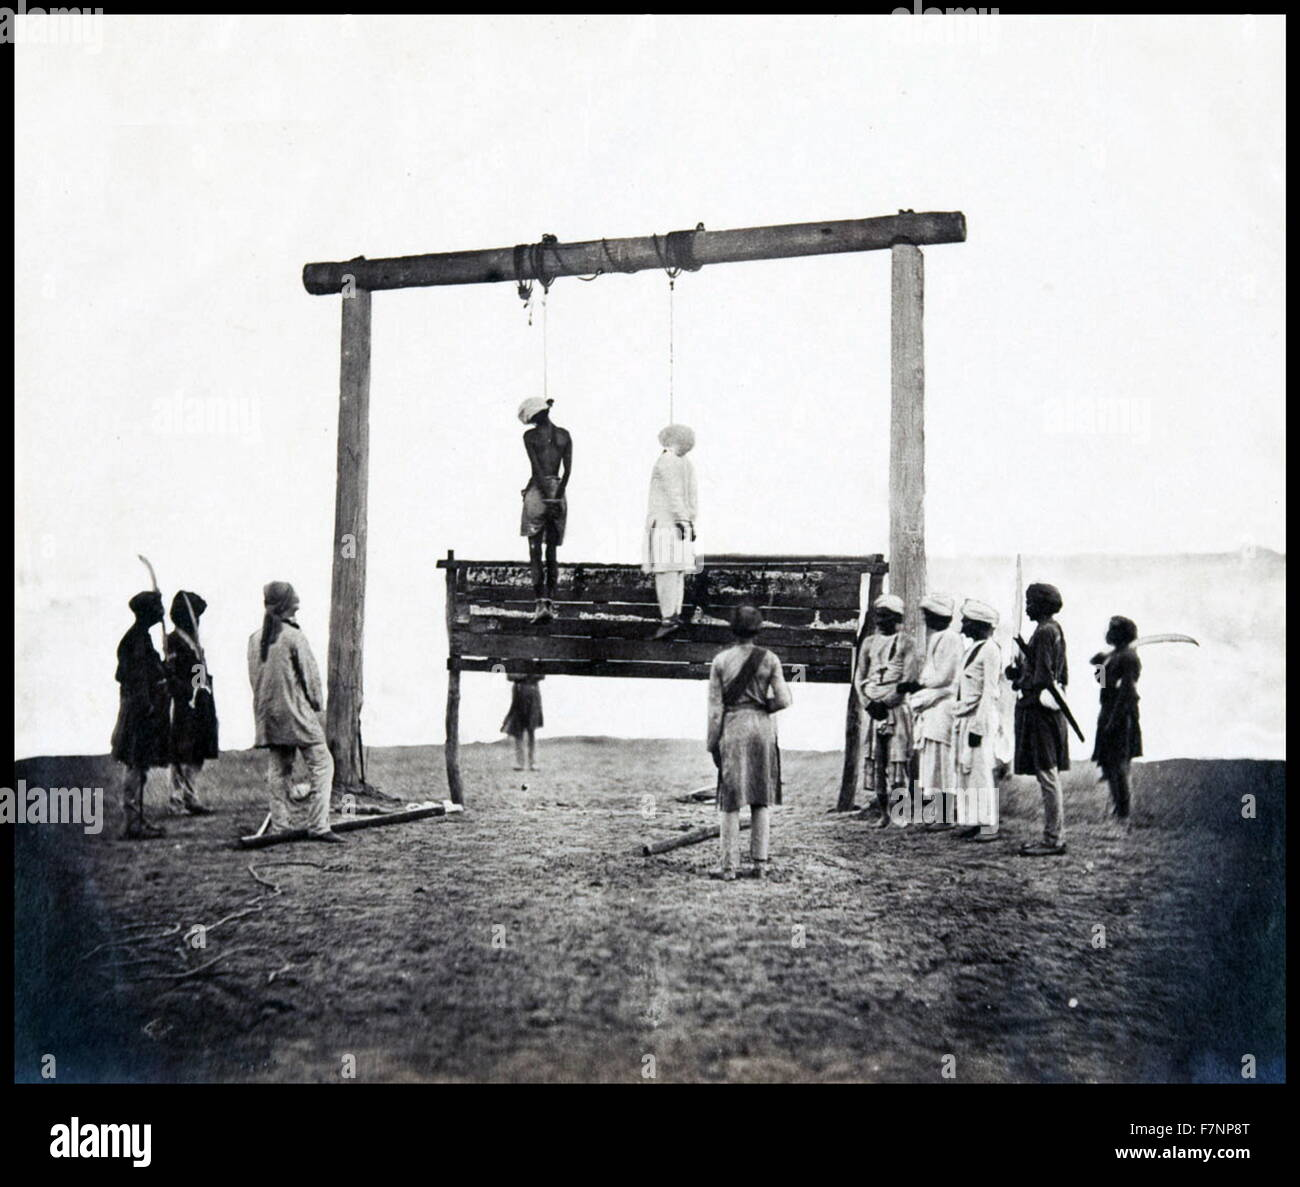 Felice Beato photograph showing the Gallows on which two of the King of Delhi's sons were hanged for having taken - Stock Image